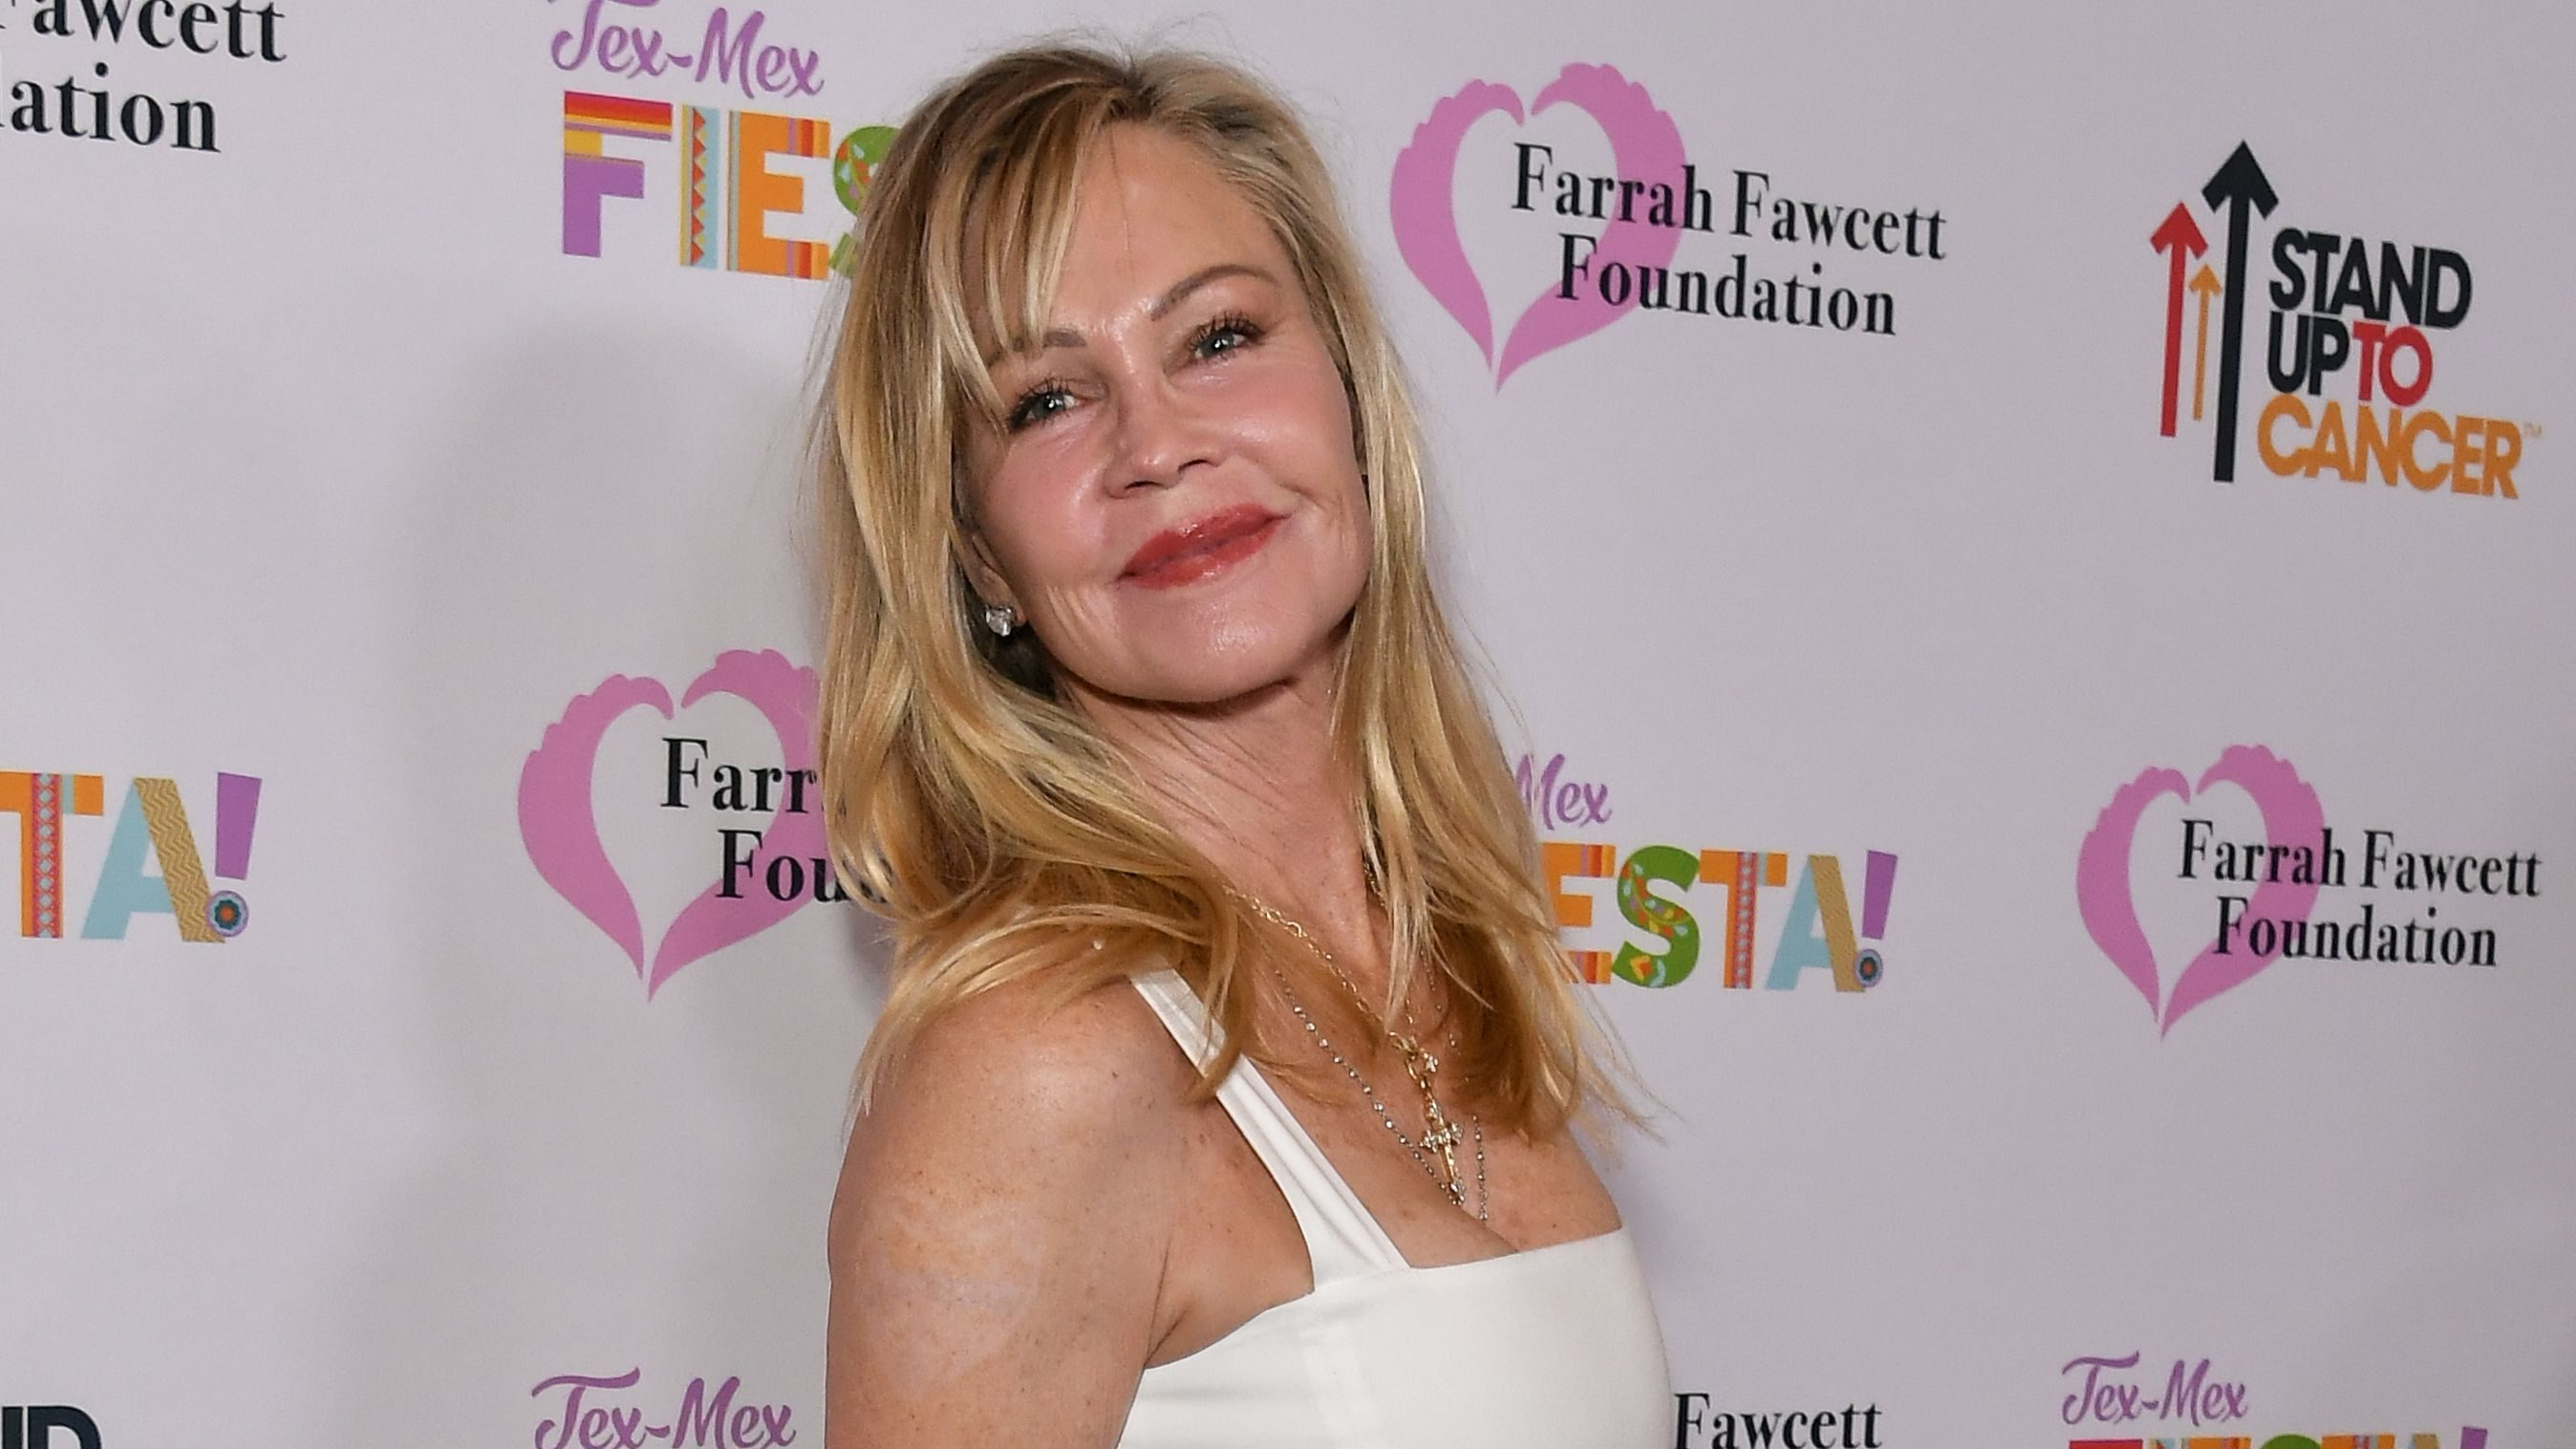 Melanie Griffith Is 'Not Looking' to Be in a Relationship: 'I'm Having a Blast!'